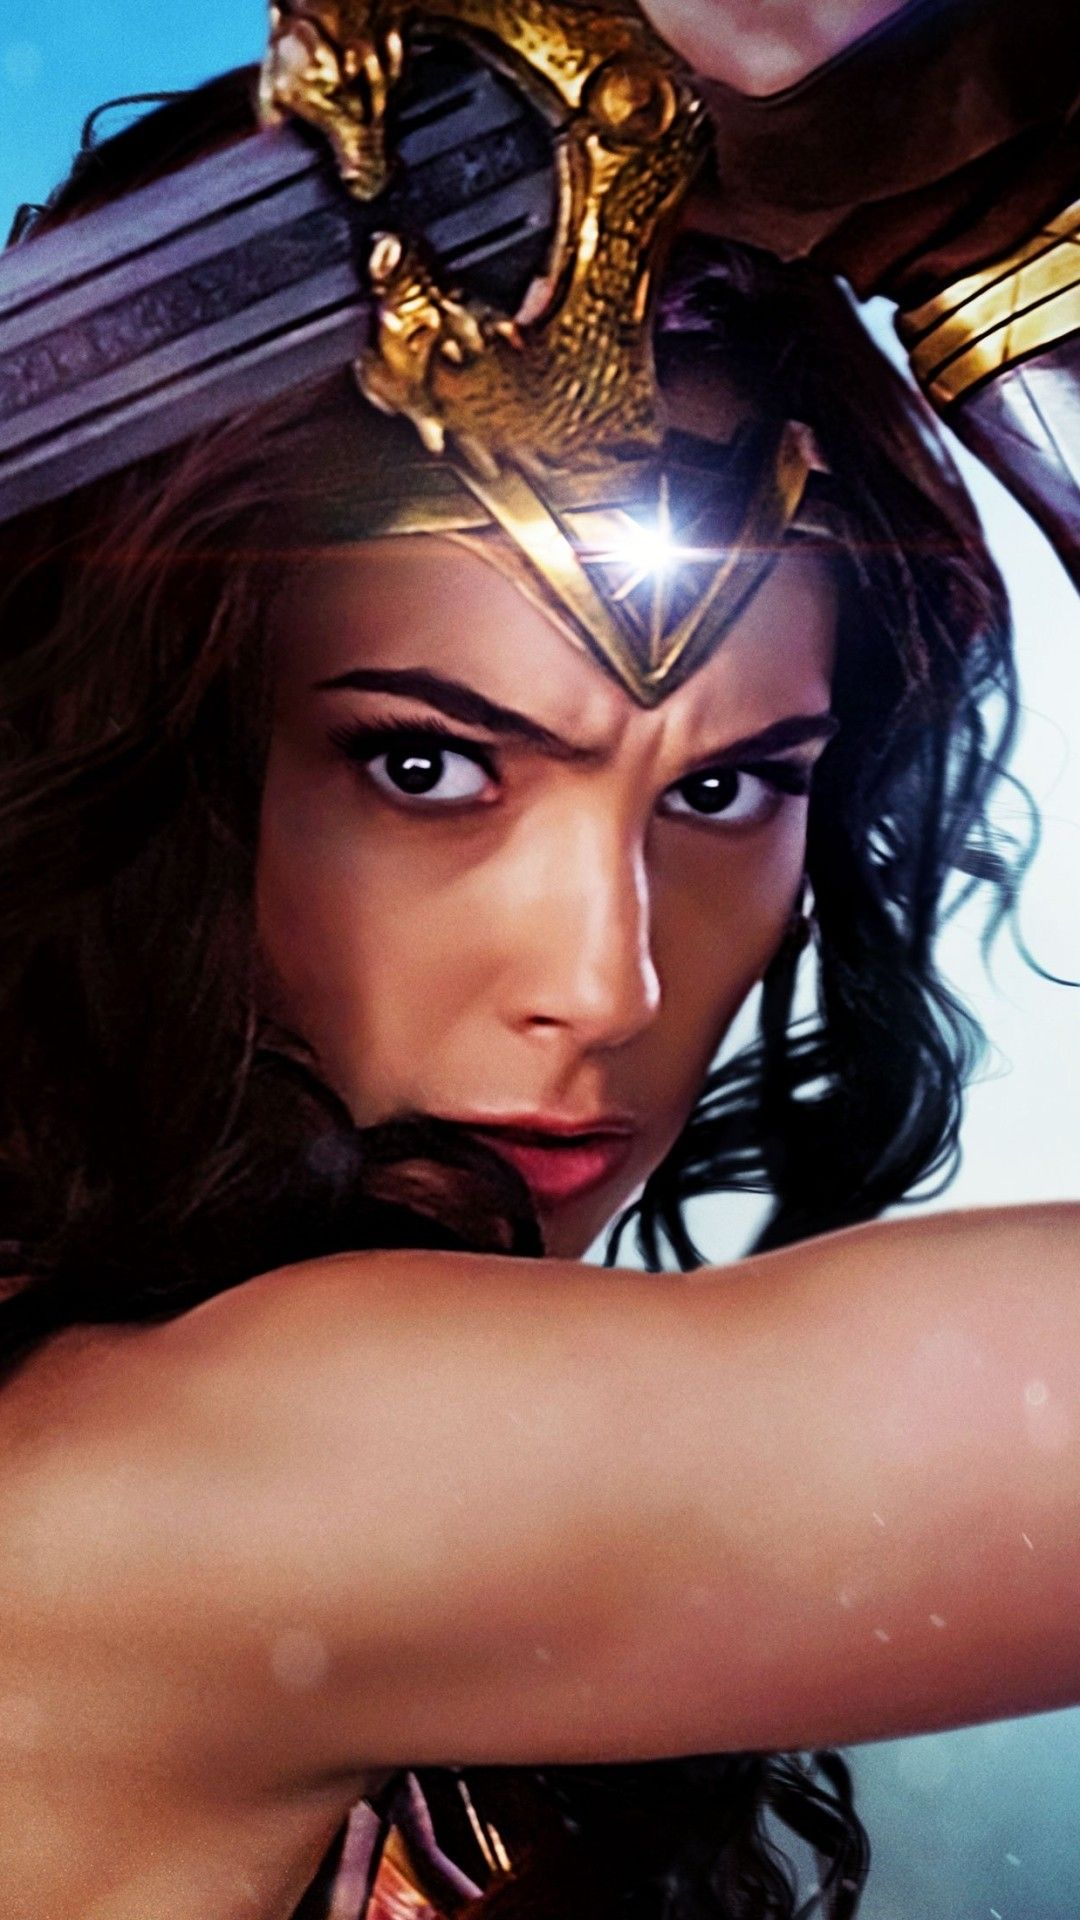 Wonder Woman Wallpaper 1080p Wonder woman, Gal gadot